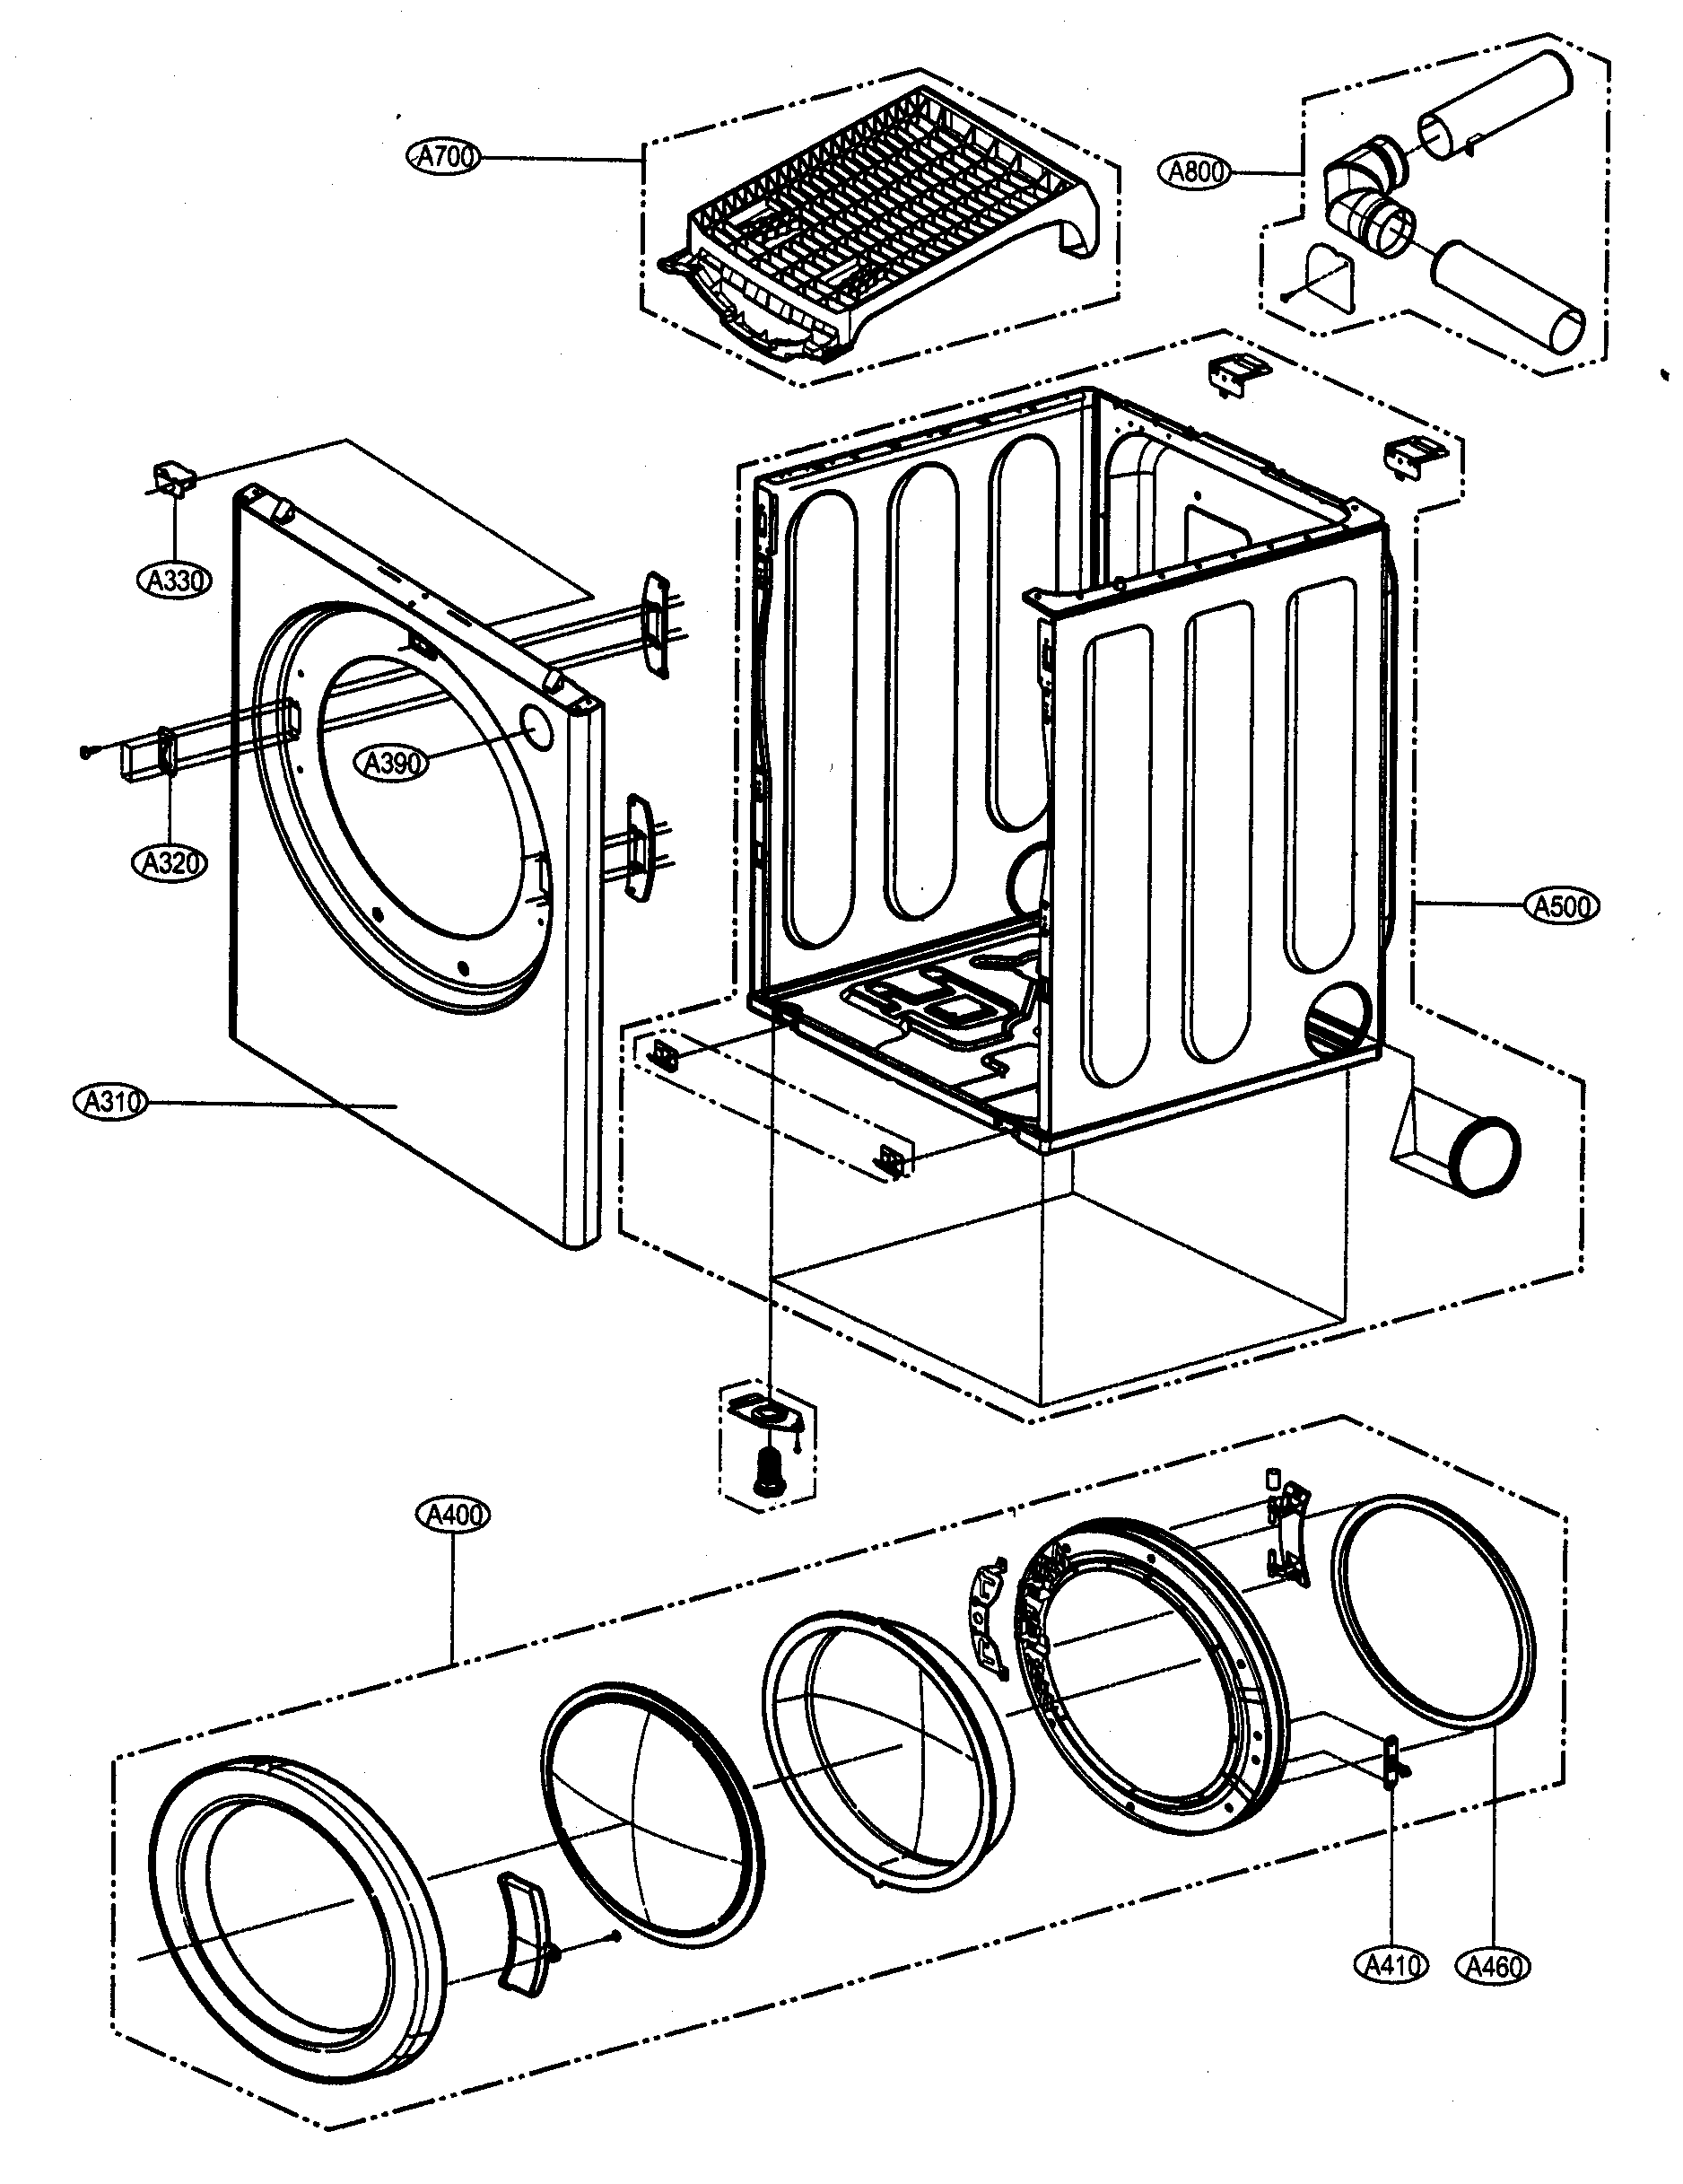 CABINET/DOOR ASSY Diagram & Parts List for Model DLE5932W